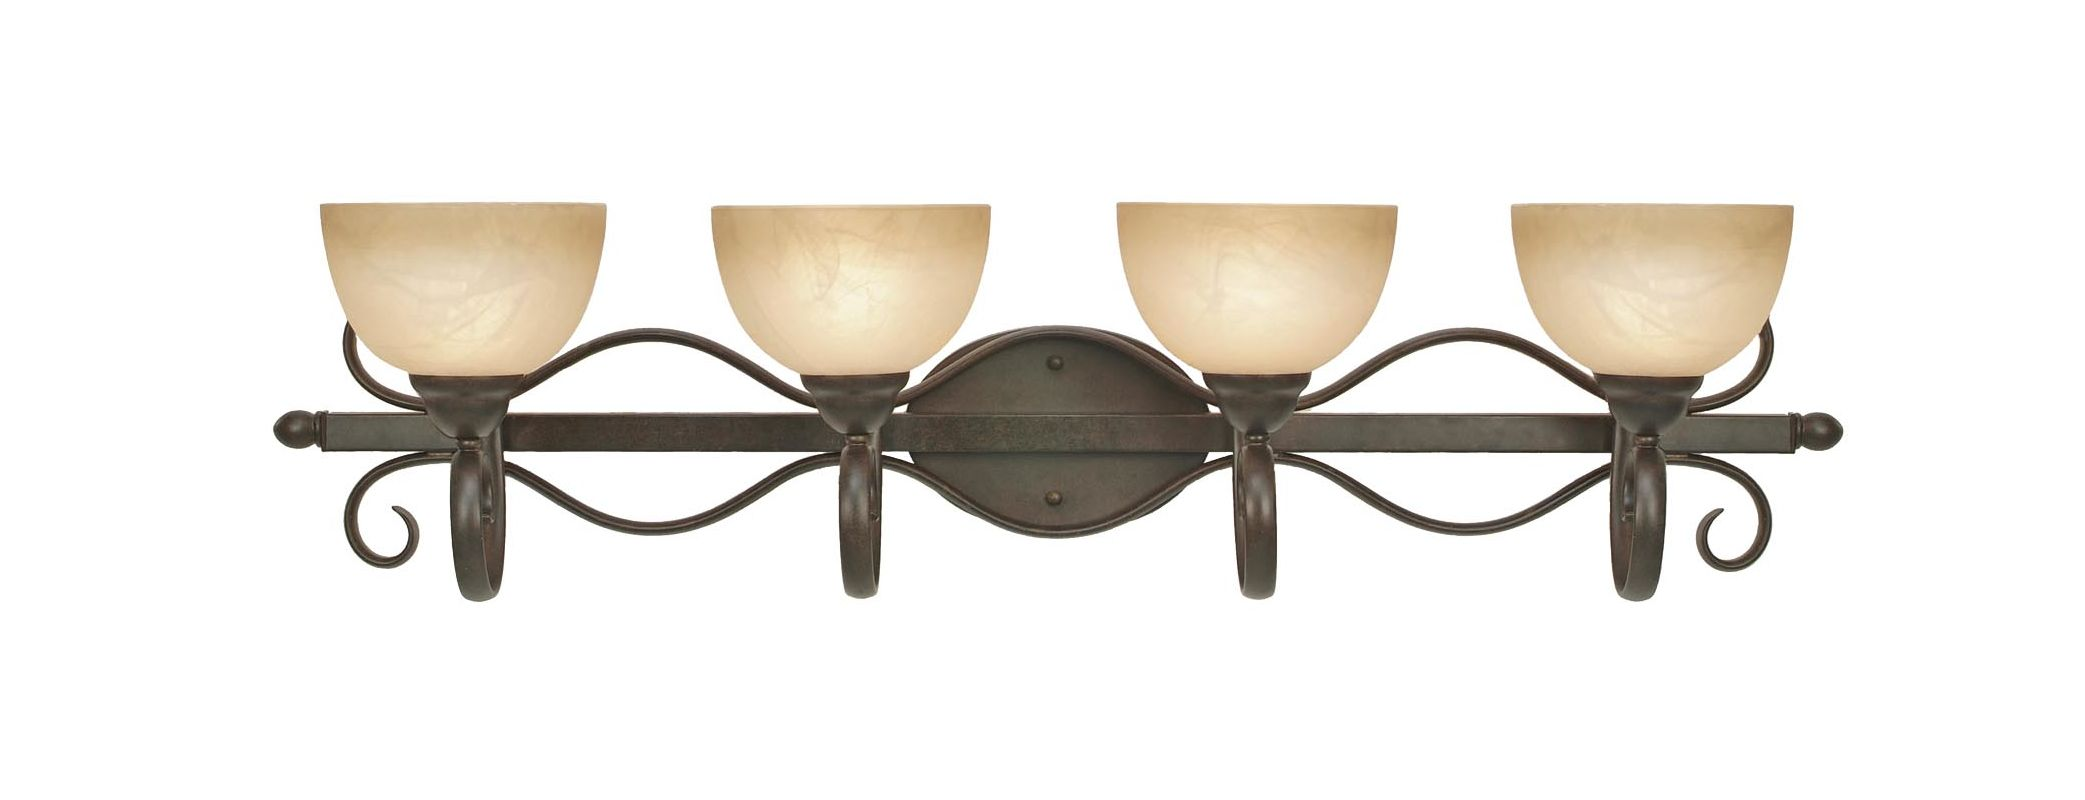 Golden Lighting 1567-BA4 Four Light Bathroom Fixture from the Riverton